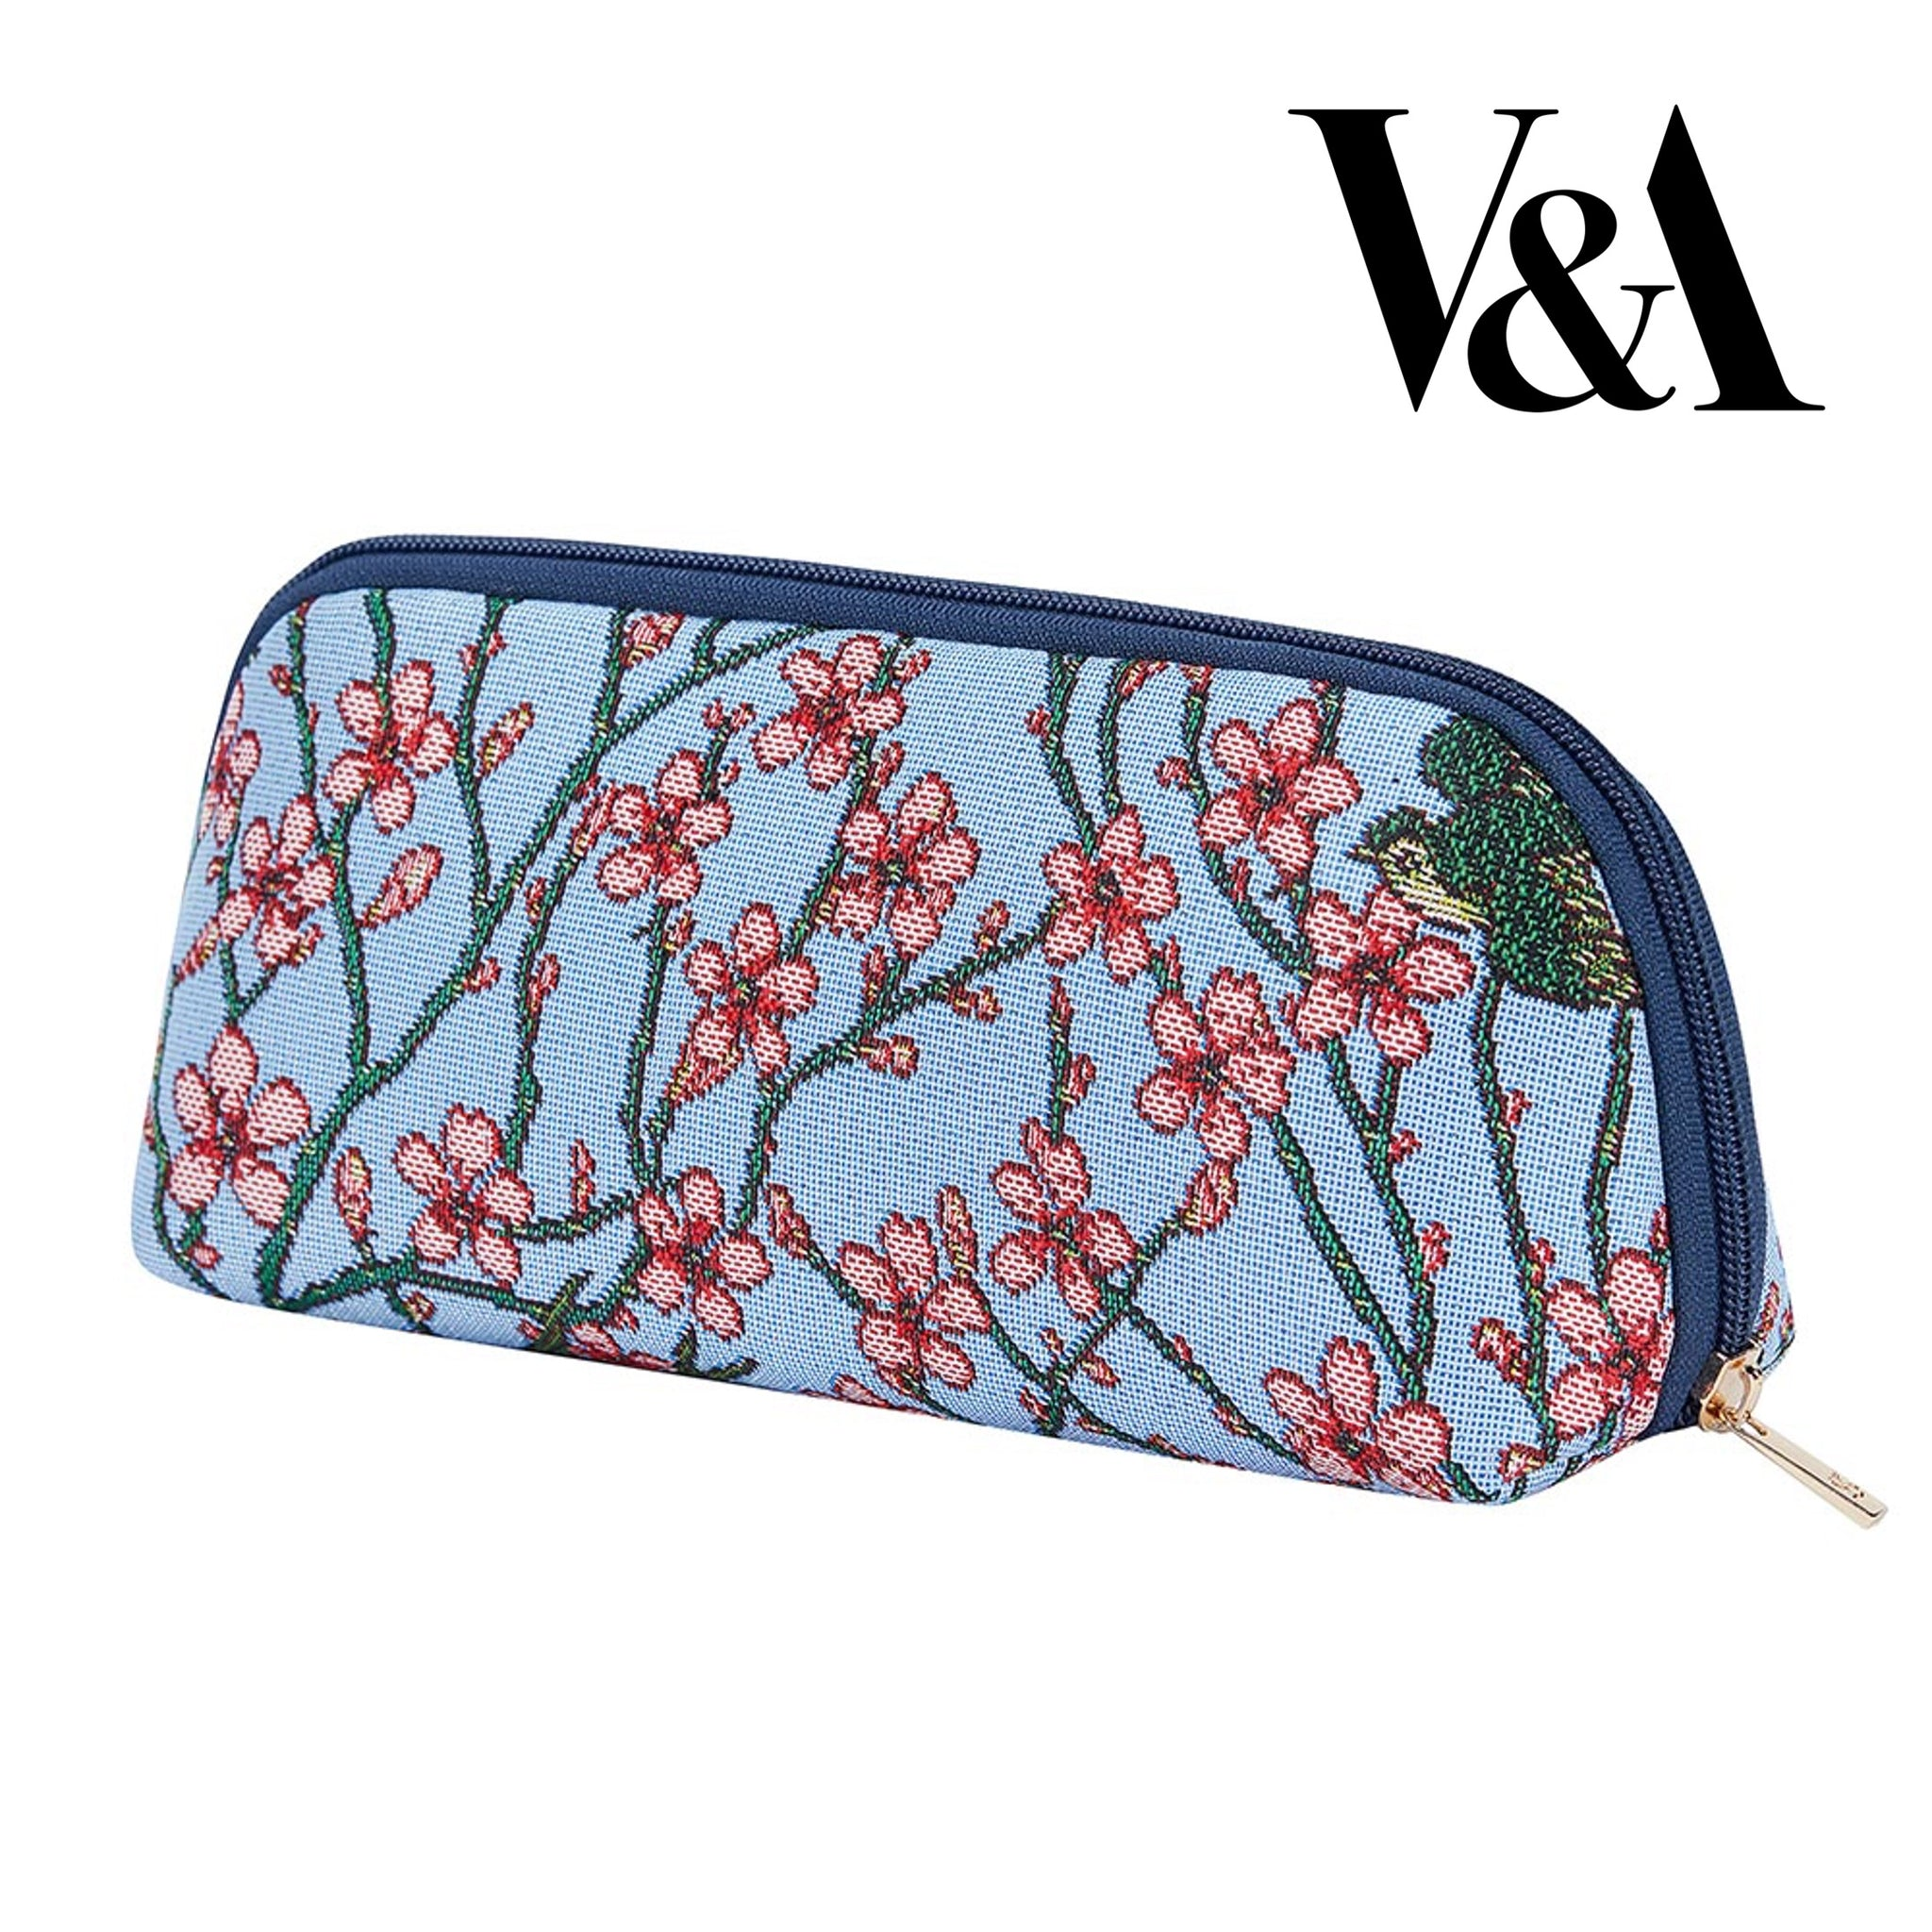 2021 S/S (New Arrival) Almond Blossom and Swallow Makeup Brush Bag | BRUBG-BLOS